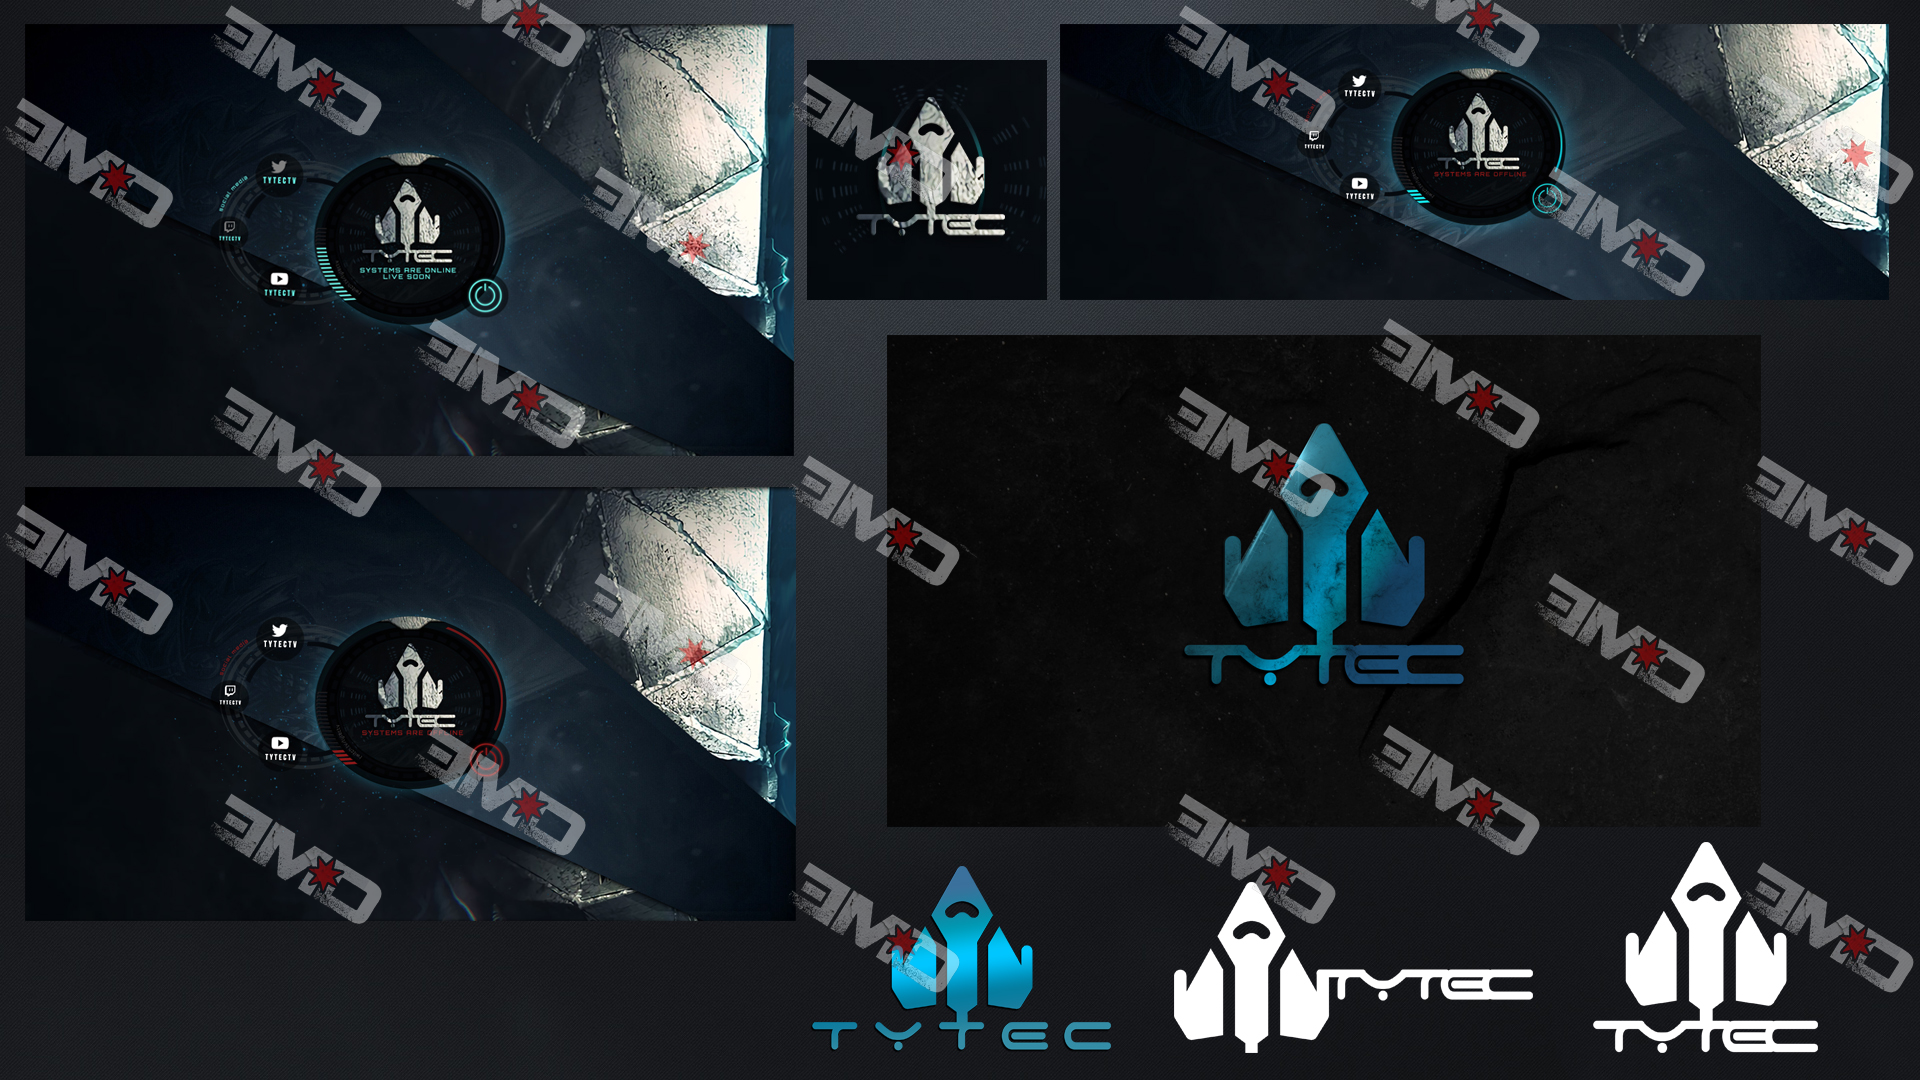 tytec.png